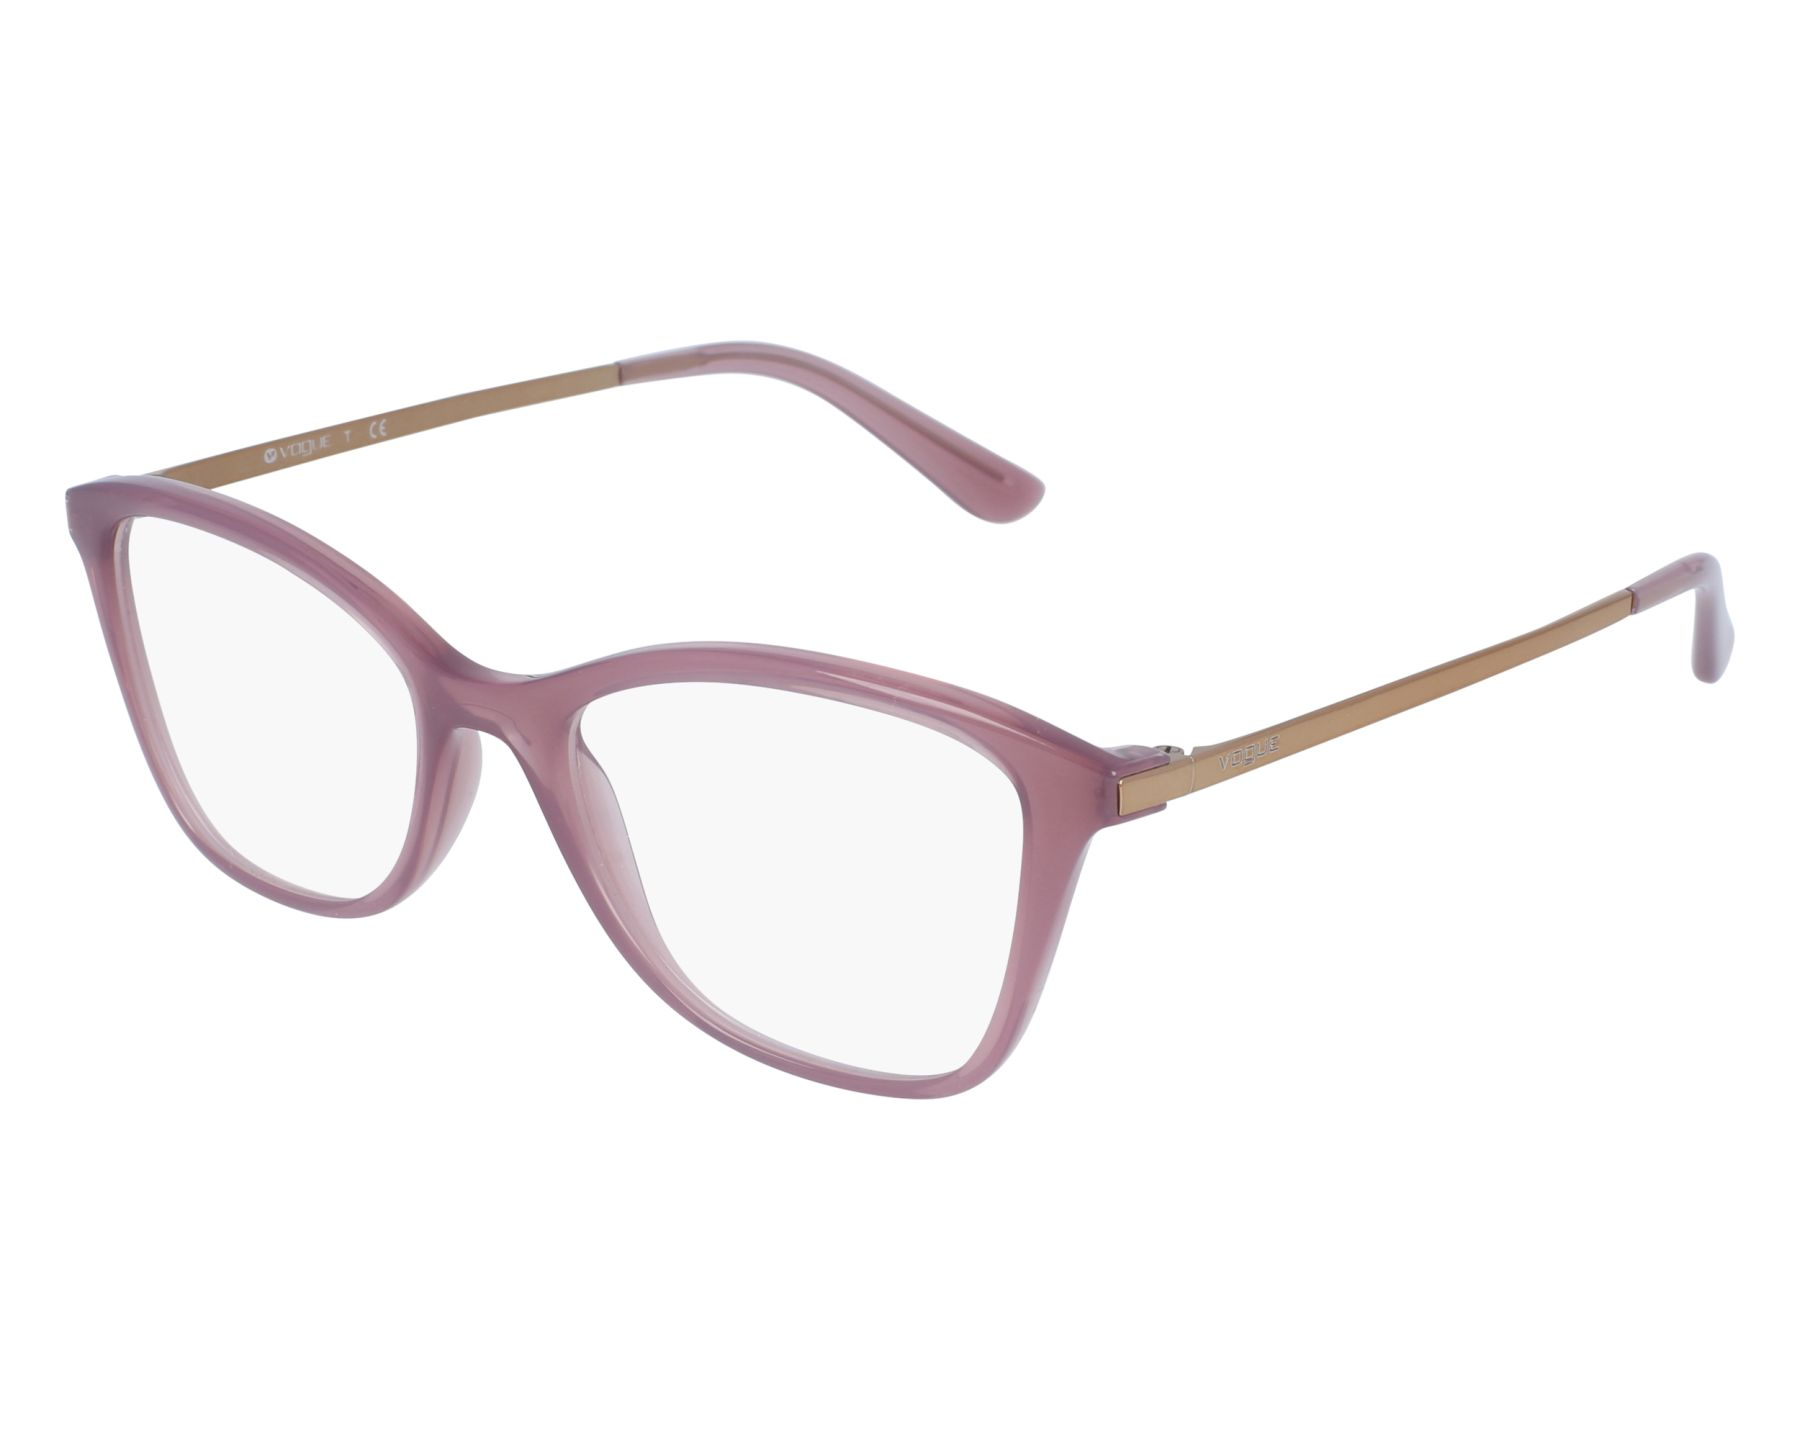 7ac3d259da6 eyeglasses Vogue VO-5152 2535 - Pink Gold front view